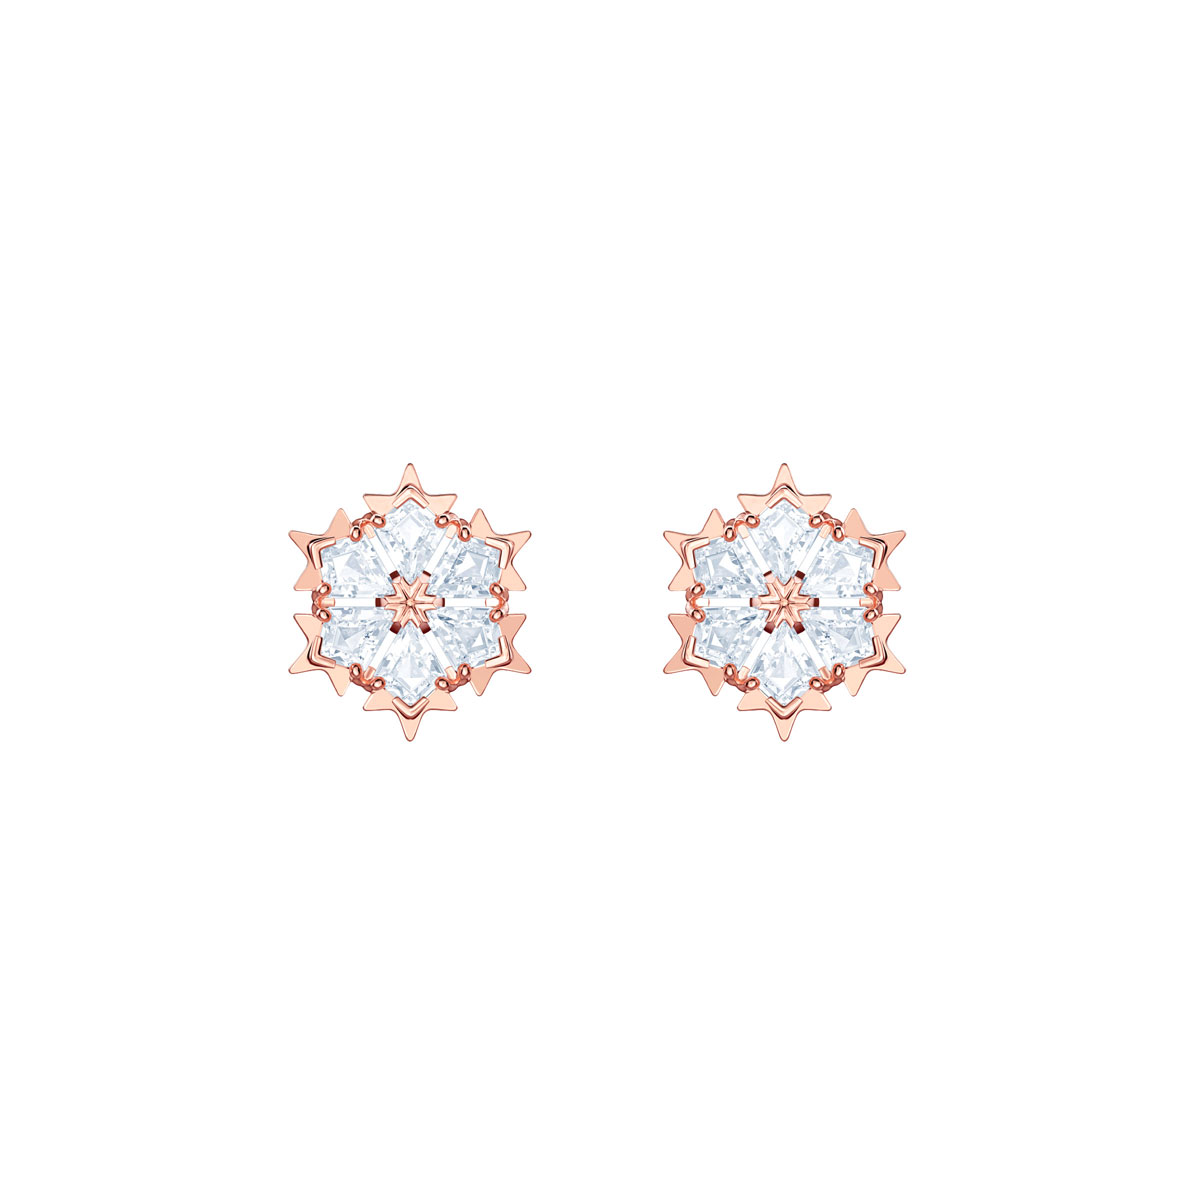 Swarovski Magic Crystal and Rose Gold Snowflake Pierced Earrings Pair